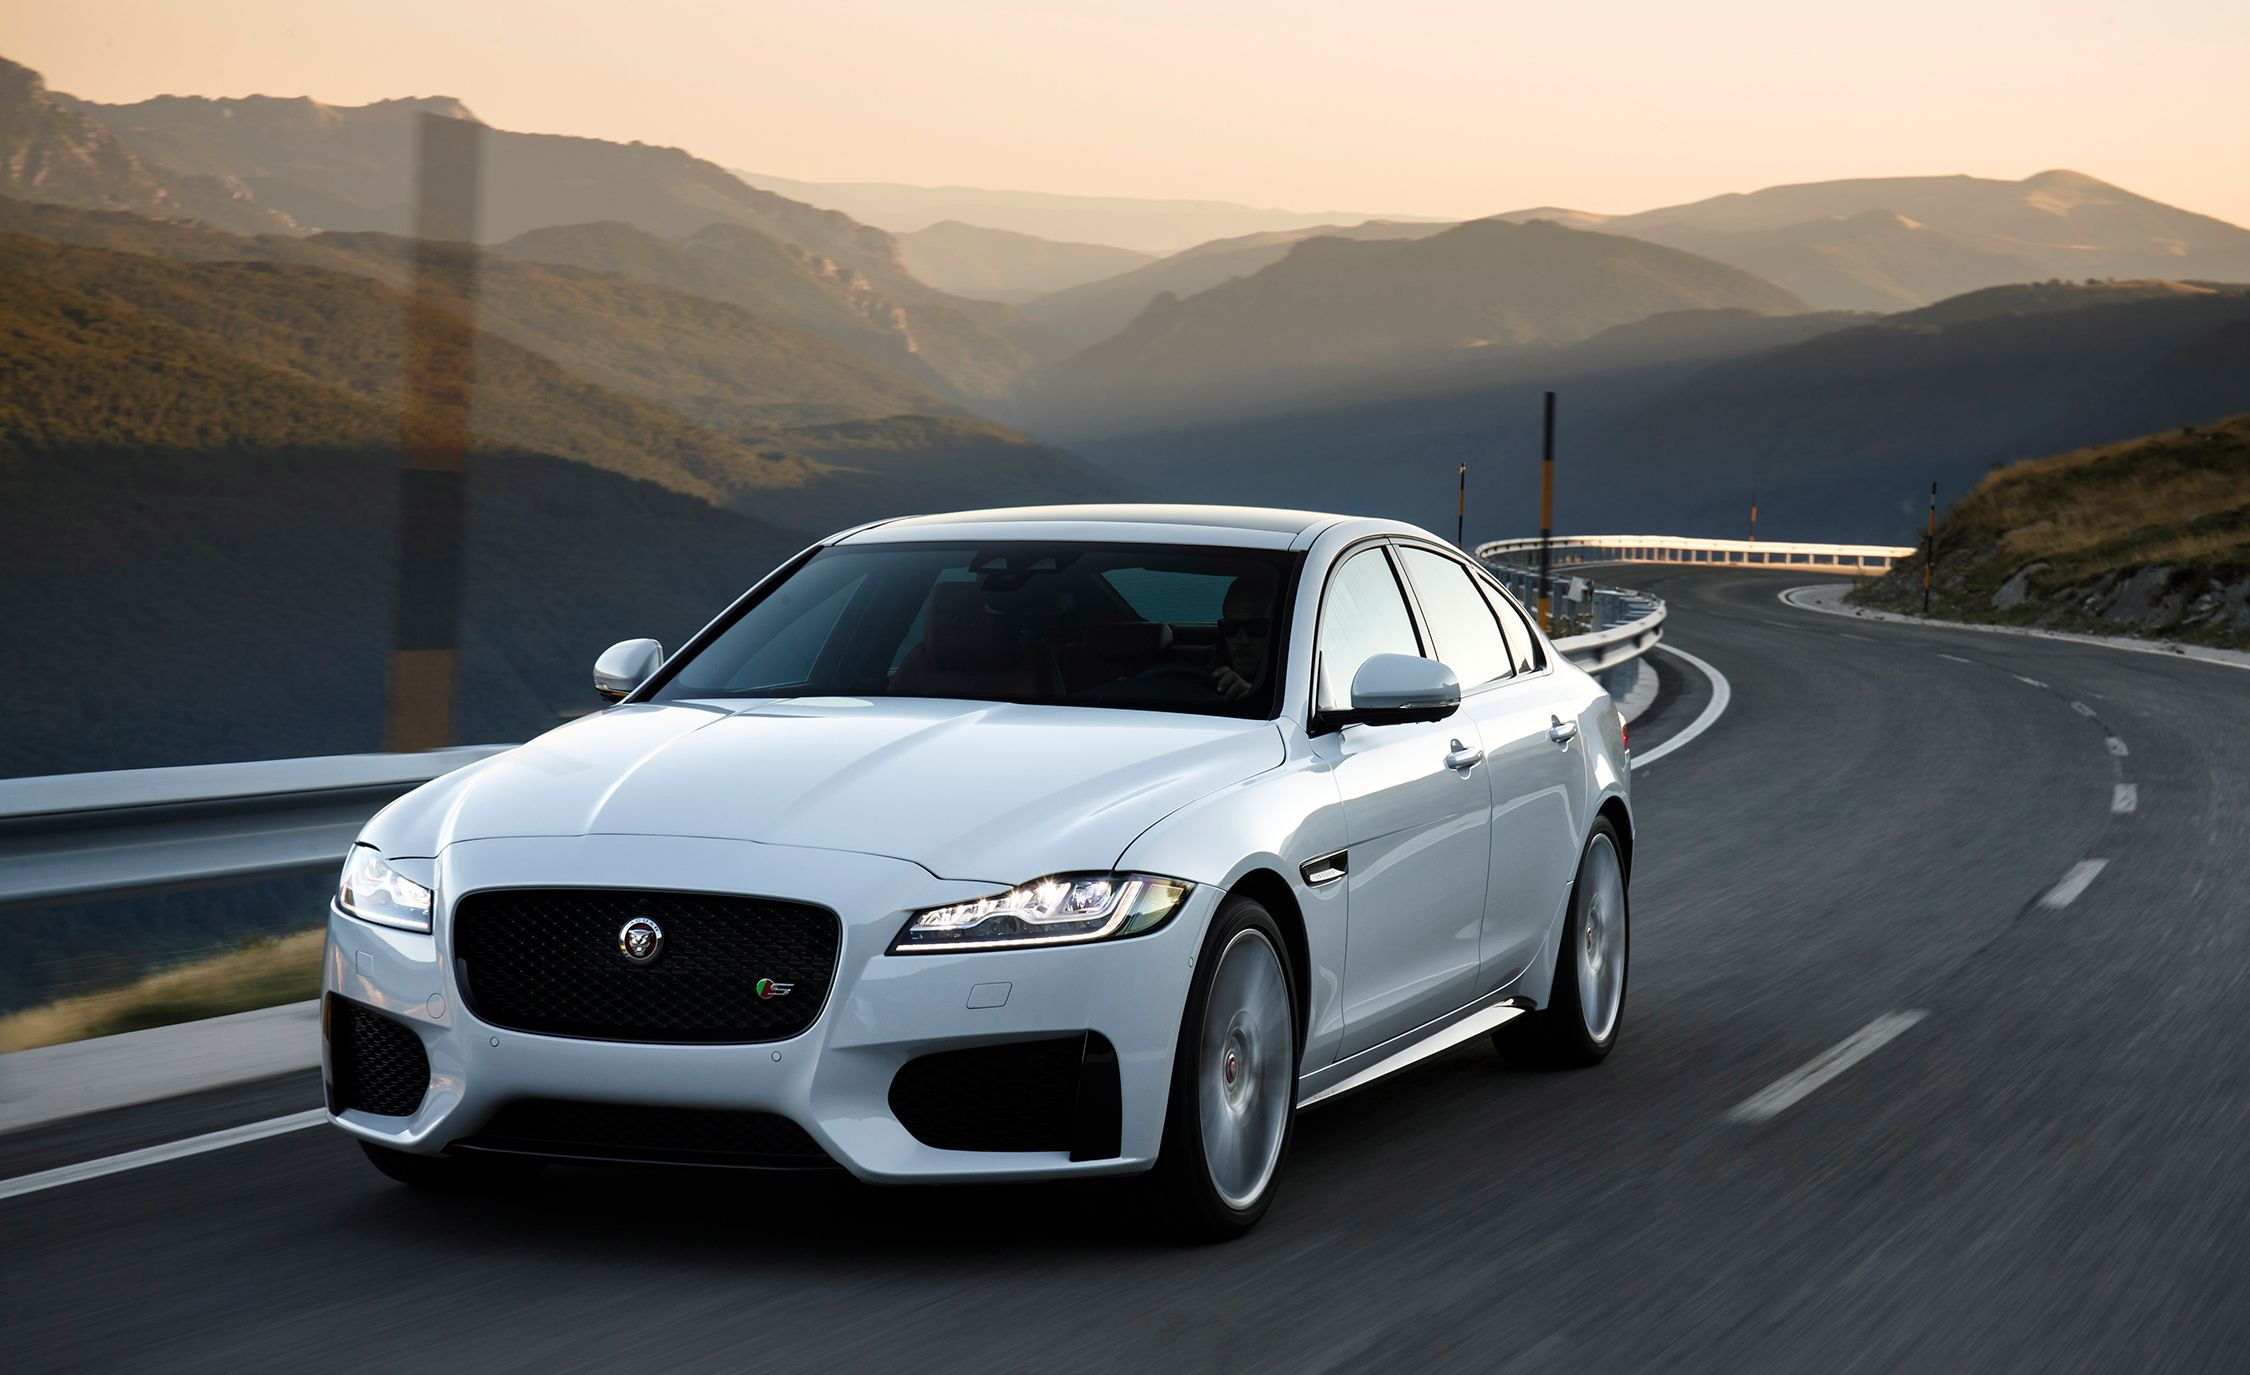 2018 Jaguar XF: Four for the Road